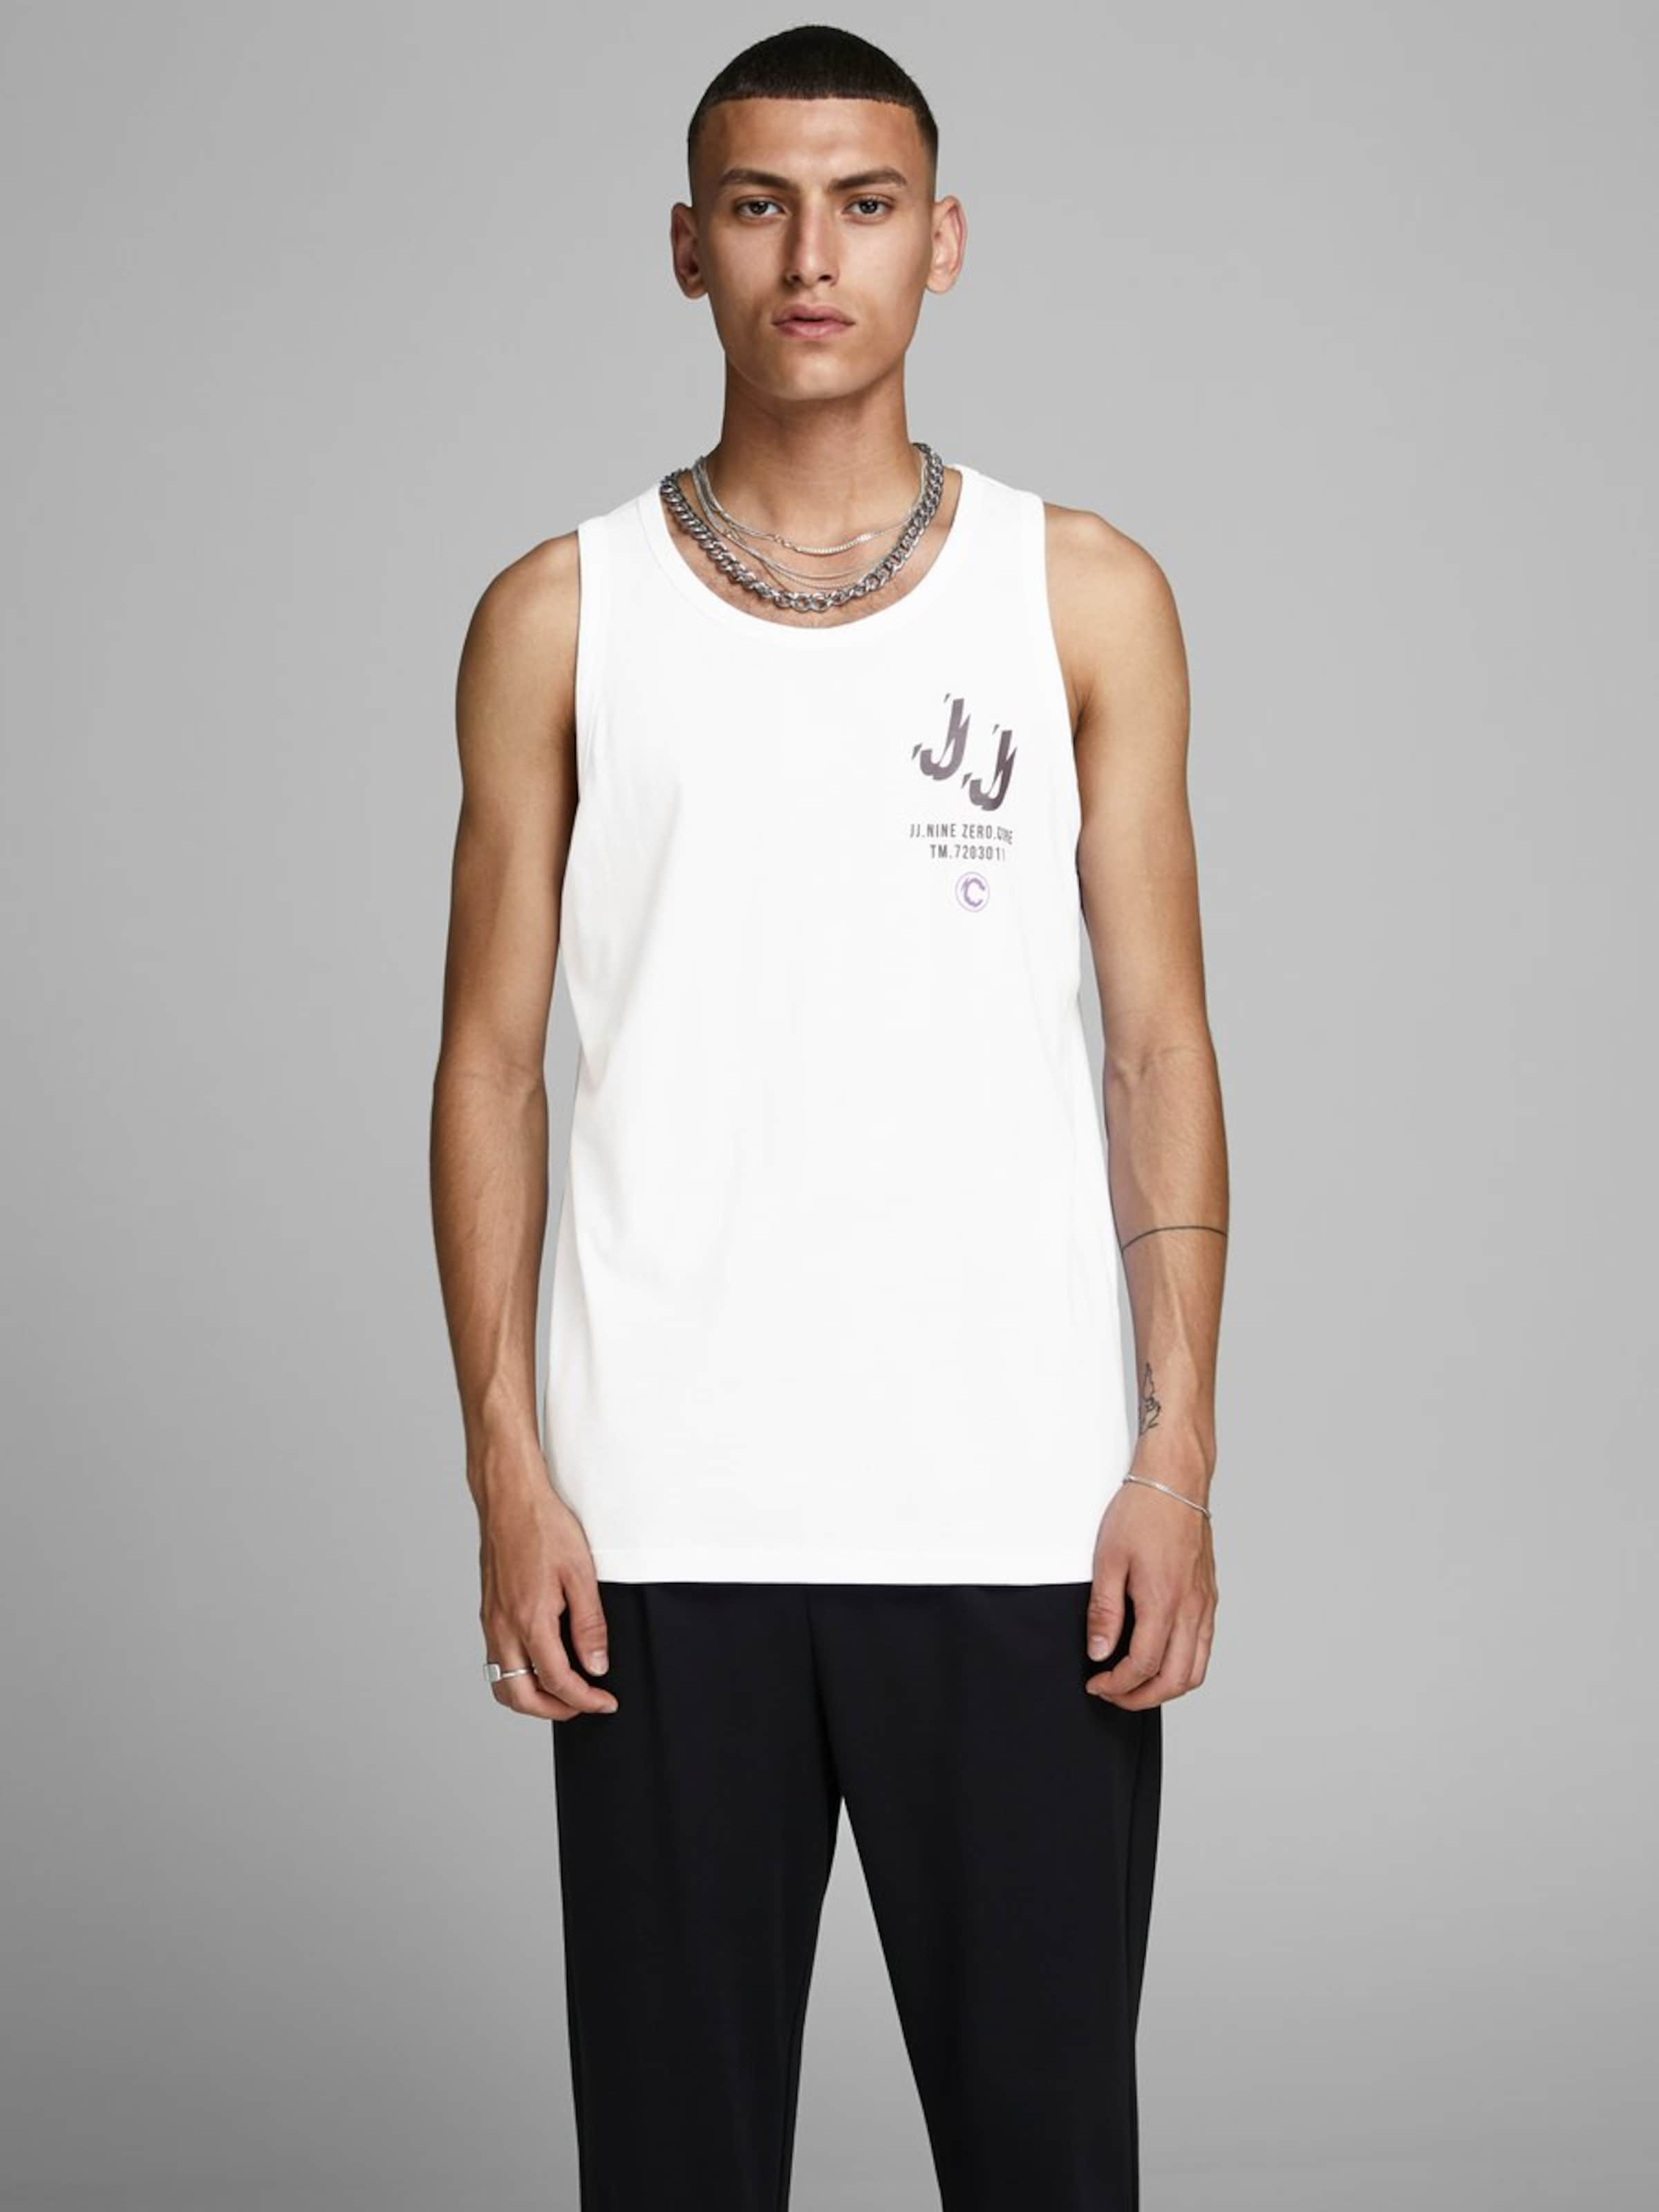 Jackamp; T PourpreNoir shirt Blanc Jones En n08wvmN